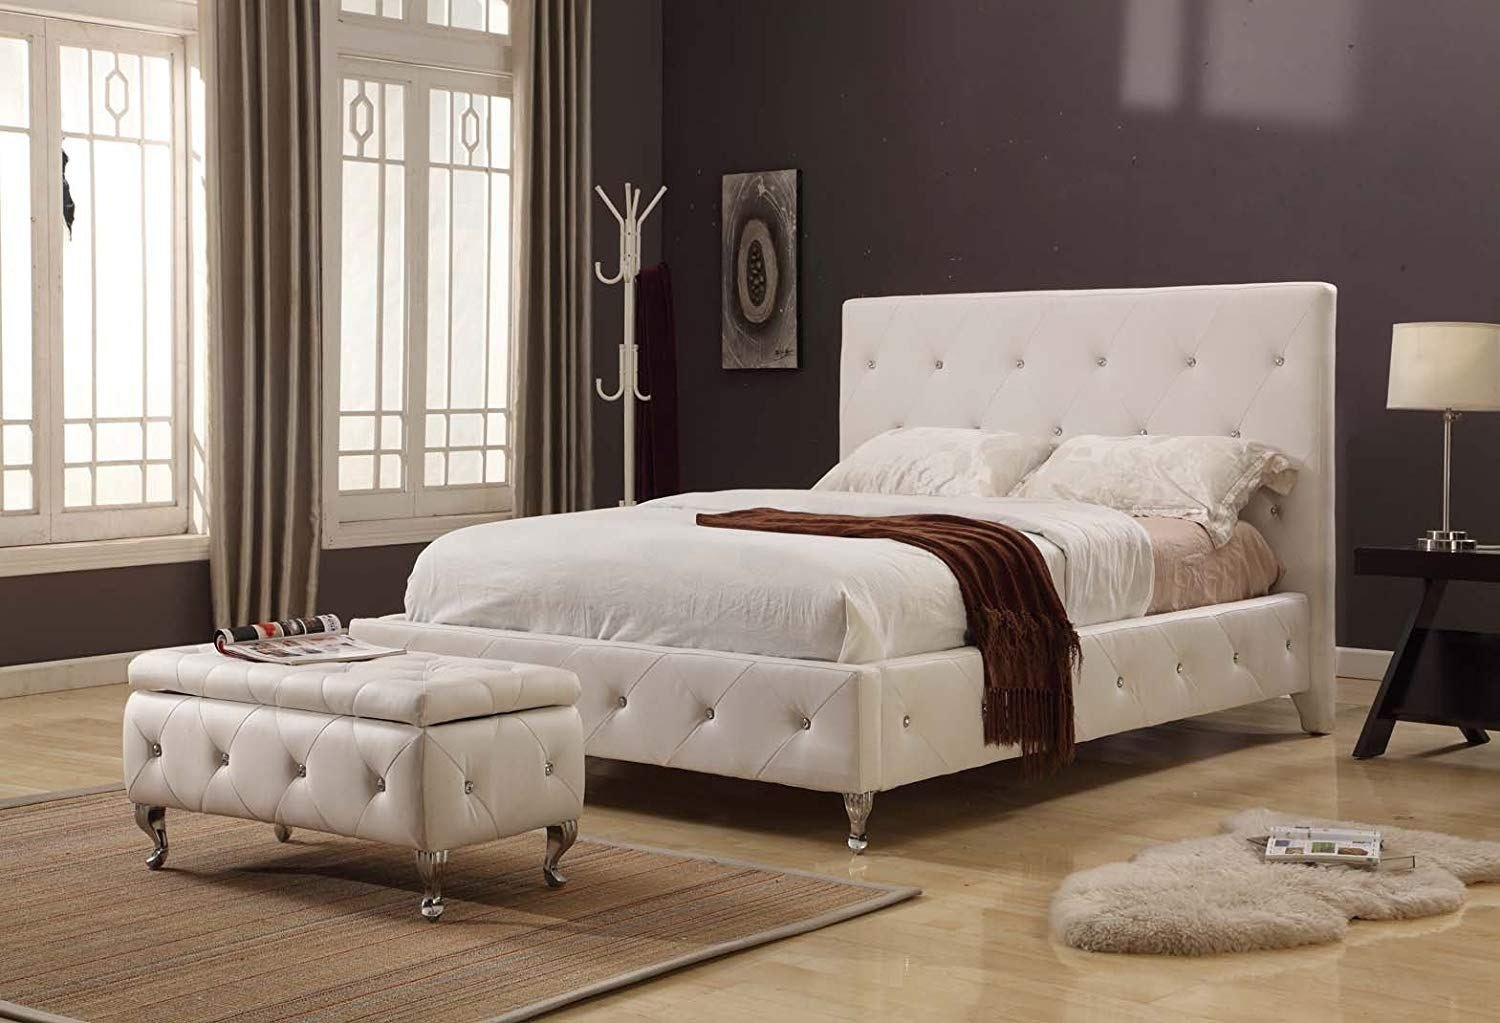 Best White Tufted Design Leather Look Queen Size Upholstered With Pictures